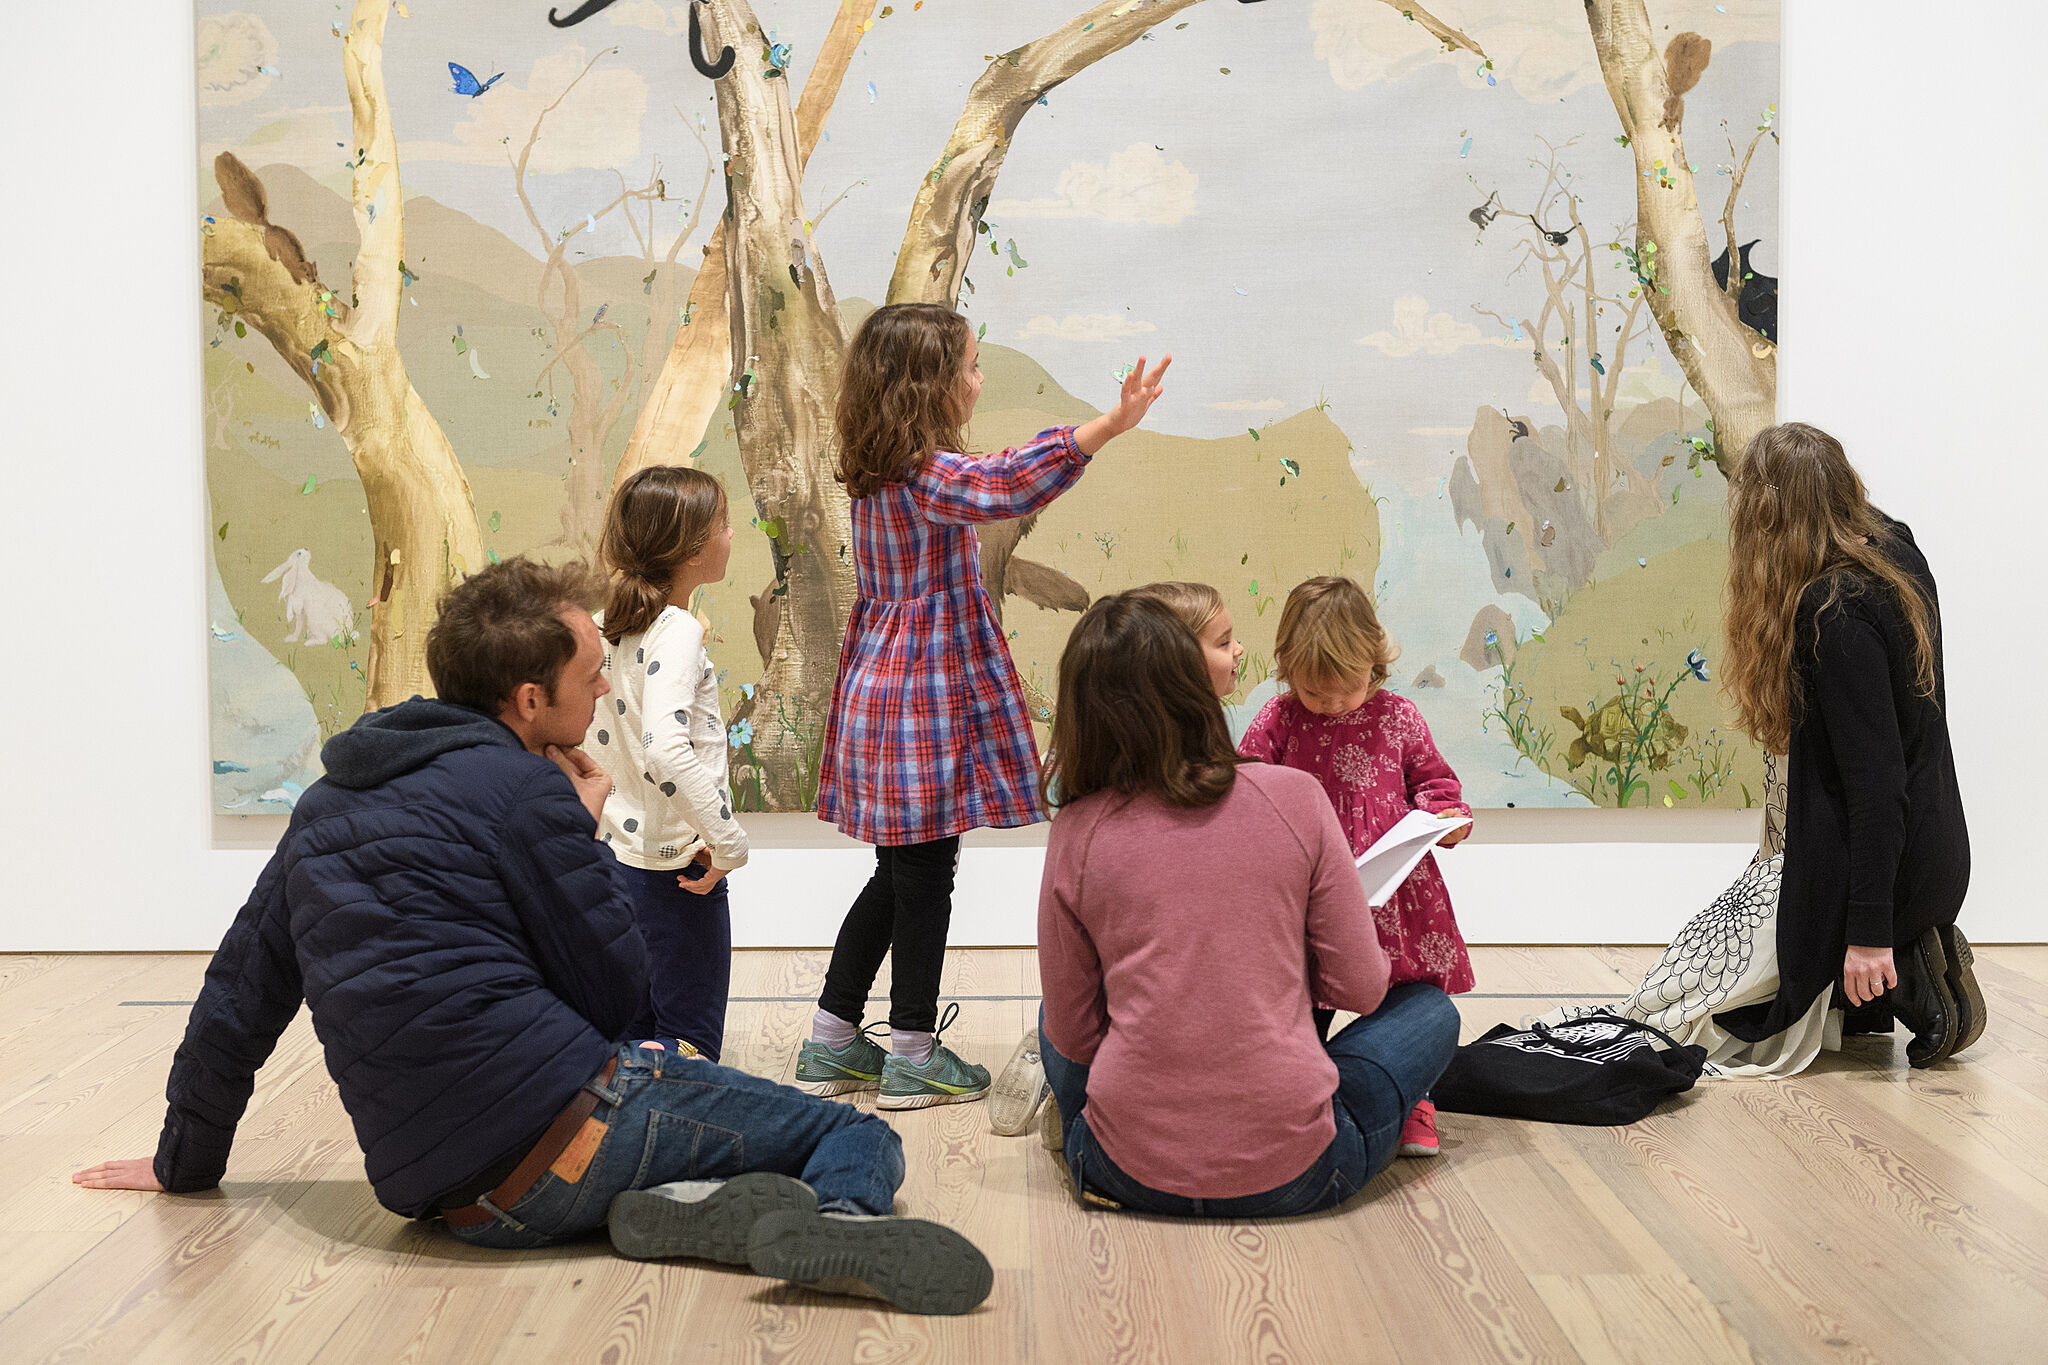 Families exploring the galleries together